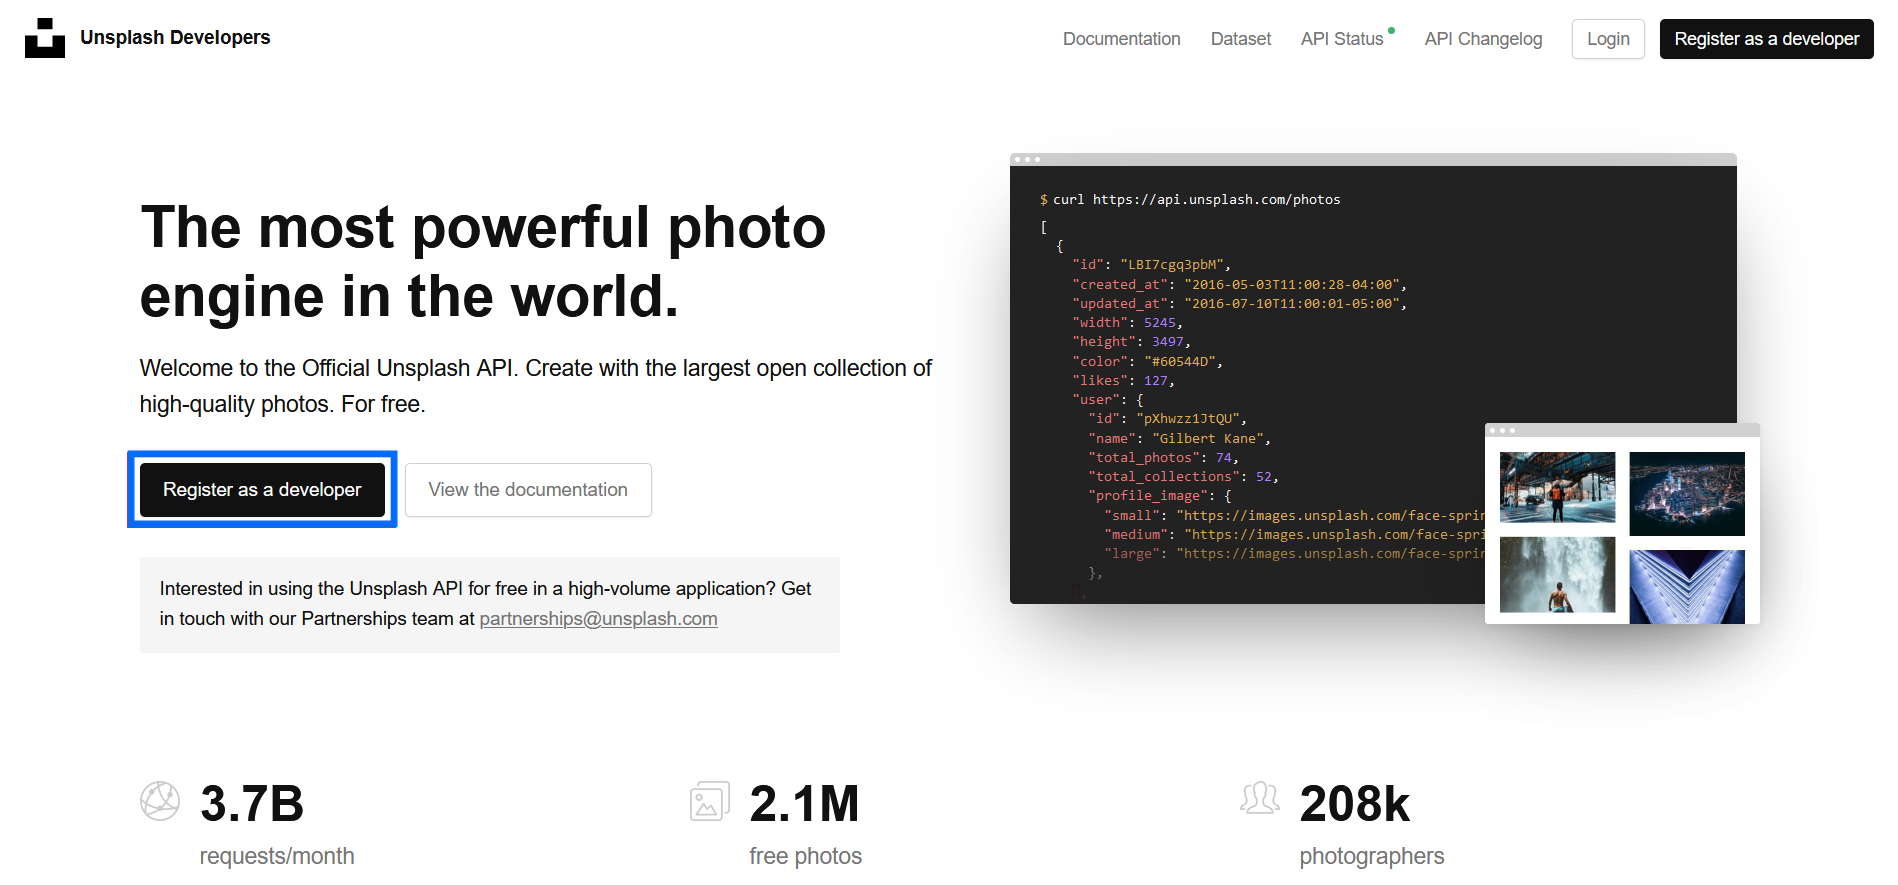 Unsplash Developer page